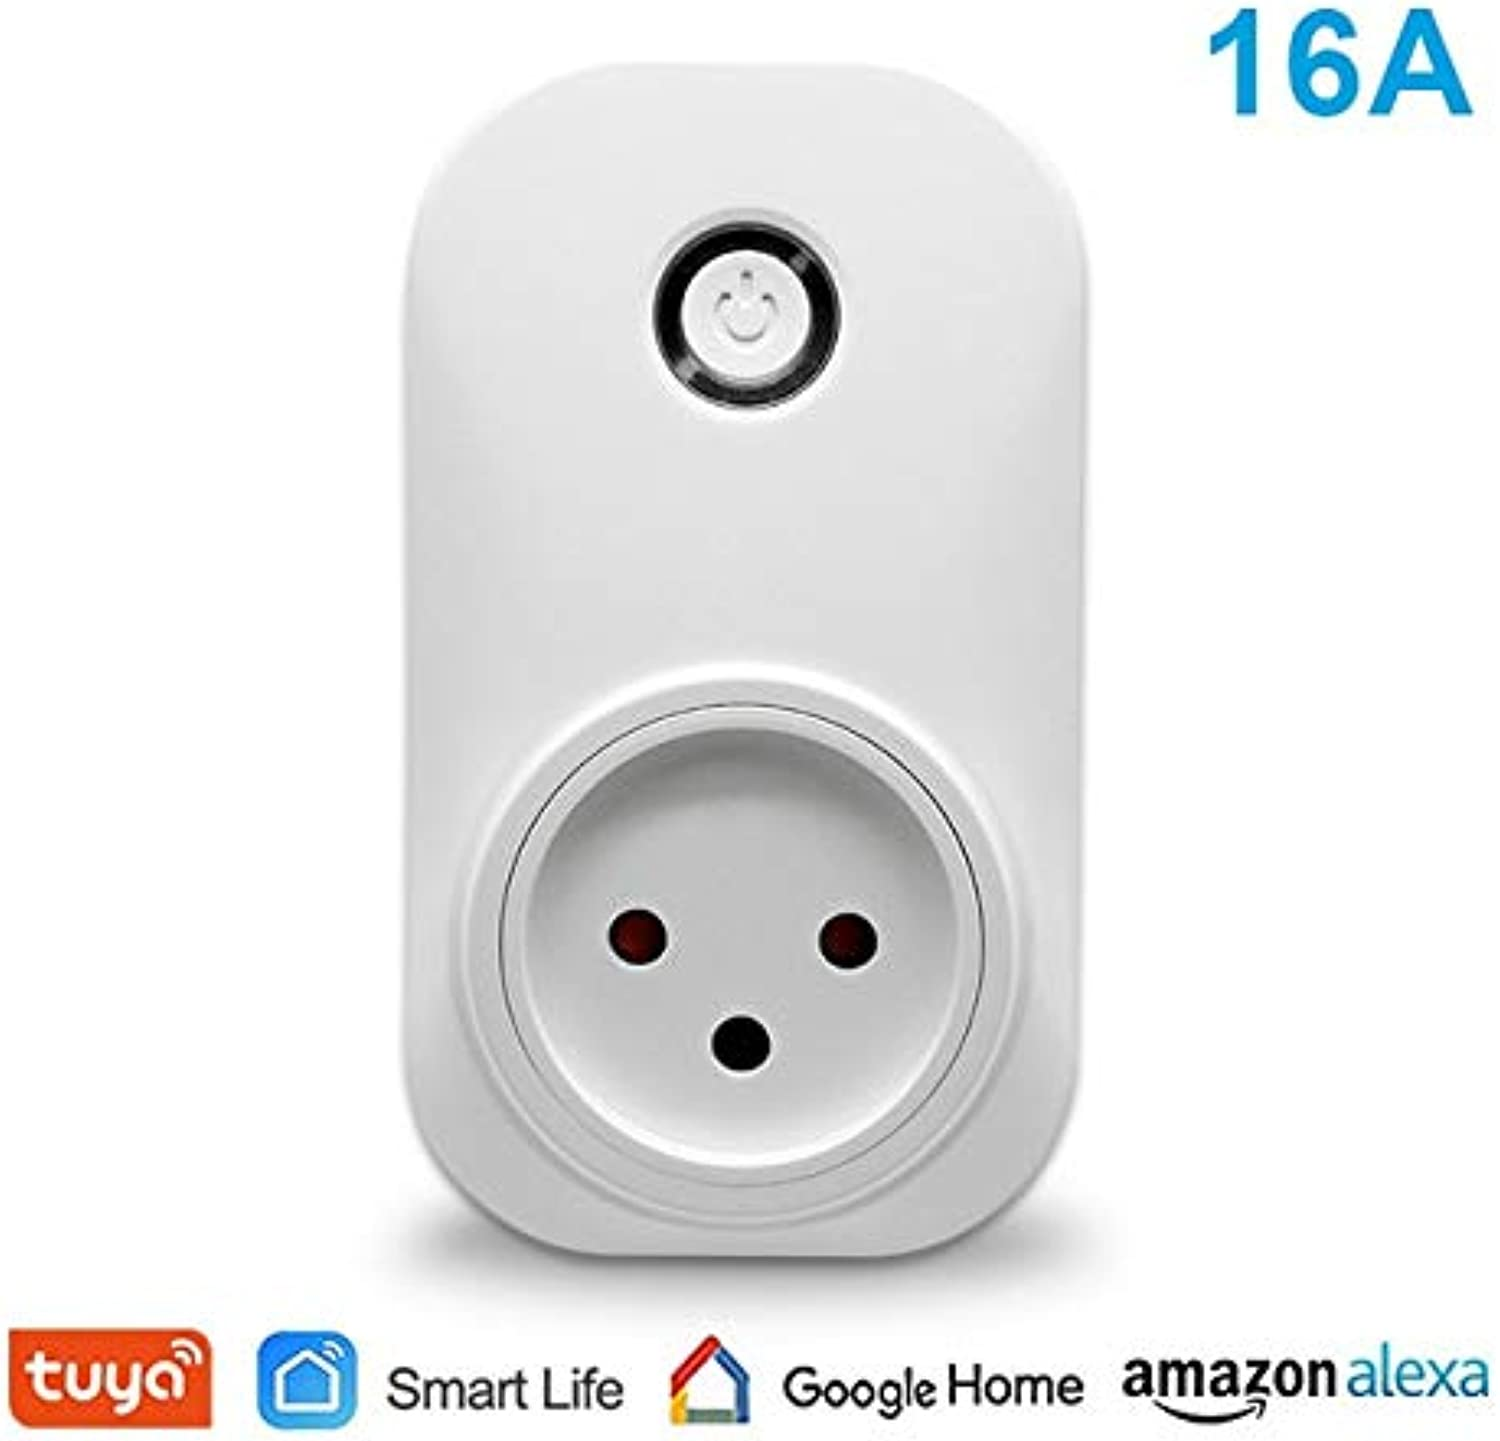 WiFi Socket Israel Type 16A 3500W Plug App Remot Control Lamps or Devices and Timer Voice Control with Google Home Alexa Echo  (color  1 pc WiFi Socket)